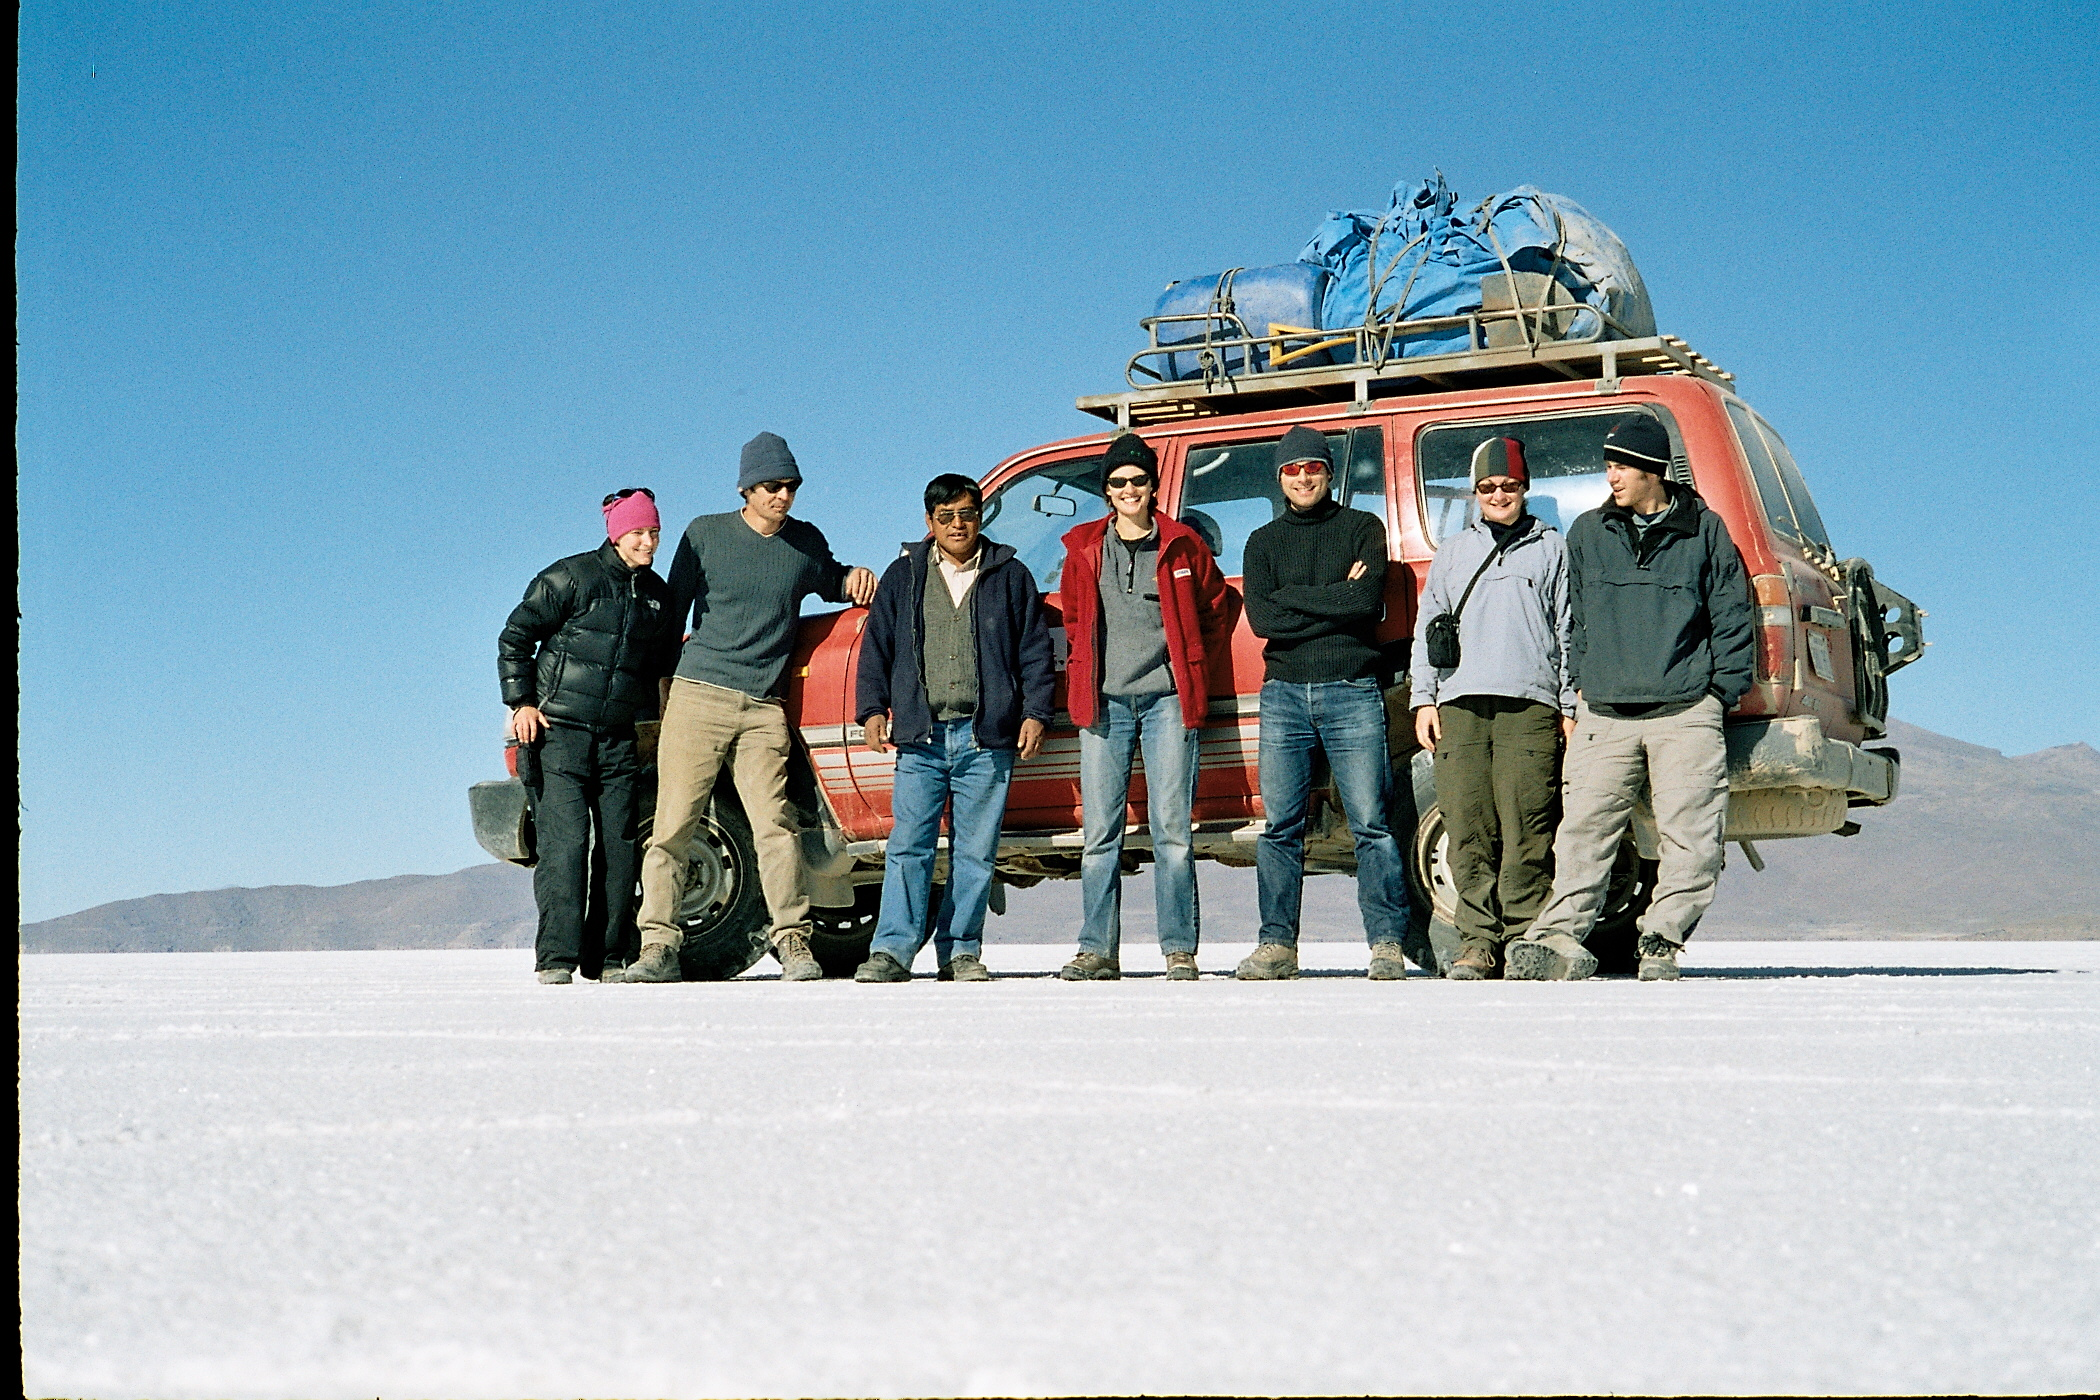 The author with her partner, four new friends and their driver standing on the vast white expanse of the Bolivian salt lake, the Salar de Uyuni, with a bright blue sky above.